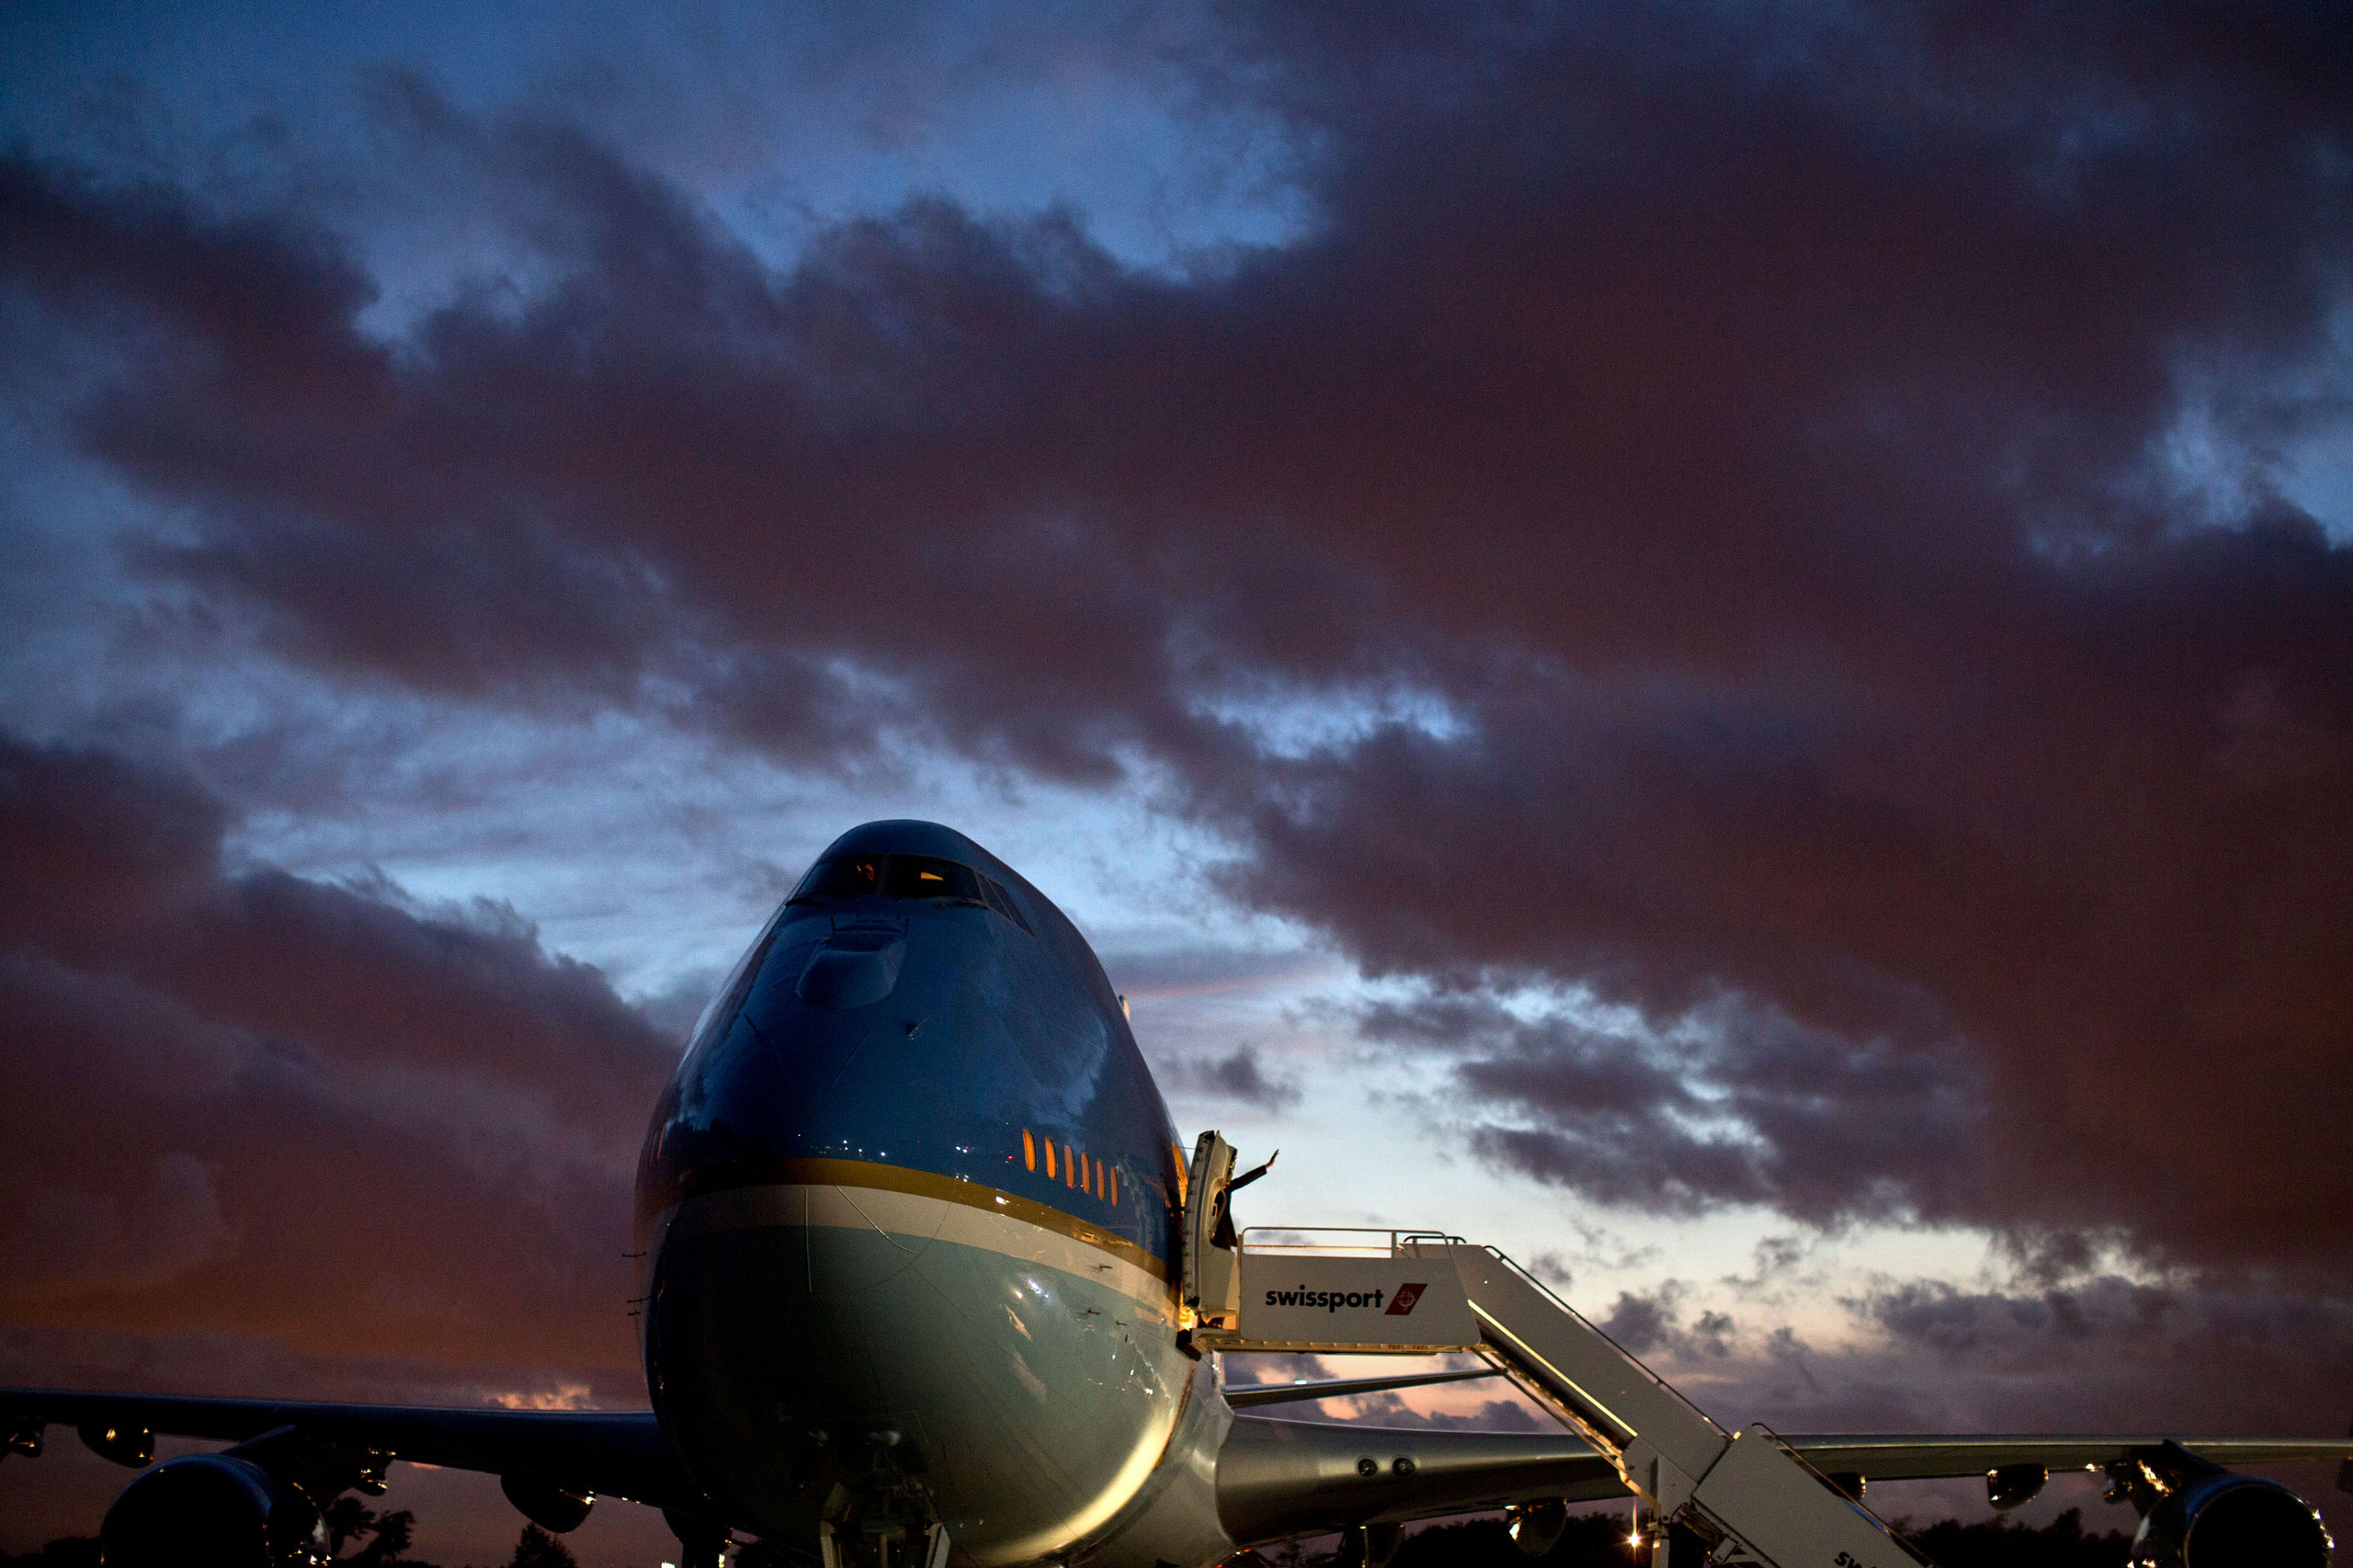 President Barack Obama waves as he boards Air Force One at John F. Kennedy International Airport in New York, N.Y., July 30, 2012.